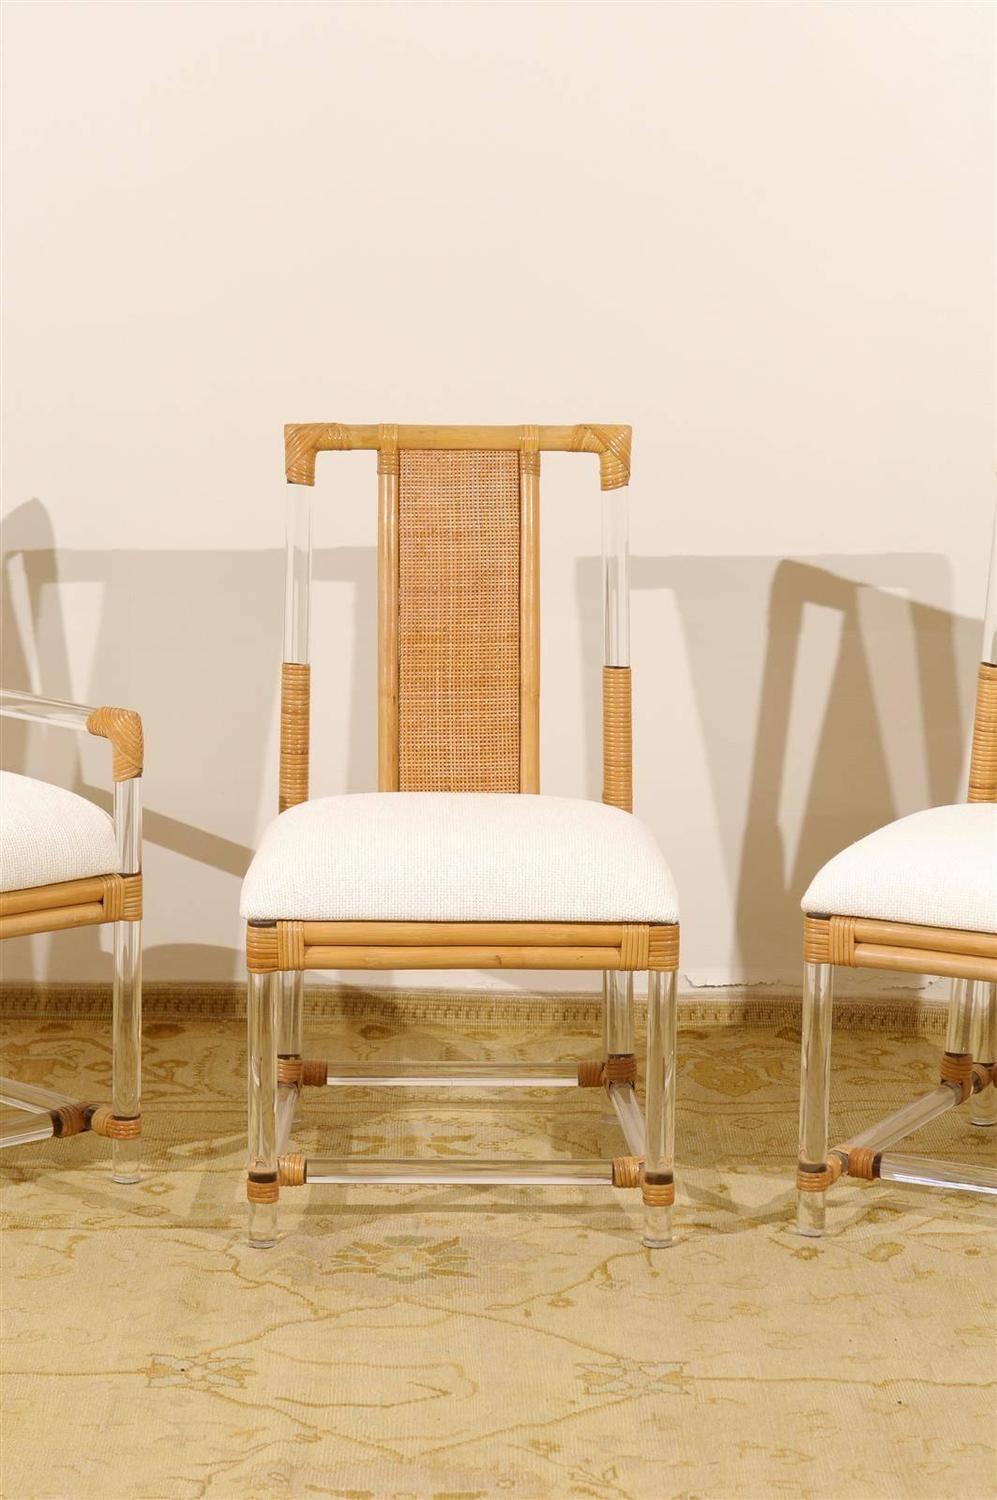 Fantastic Chic Set Of Six Vintage Lucite And Rattan Dining Chairs At Ocoug Best Dining Table And Chair Ideas Images Ocougorg